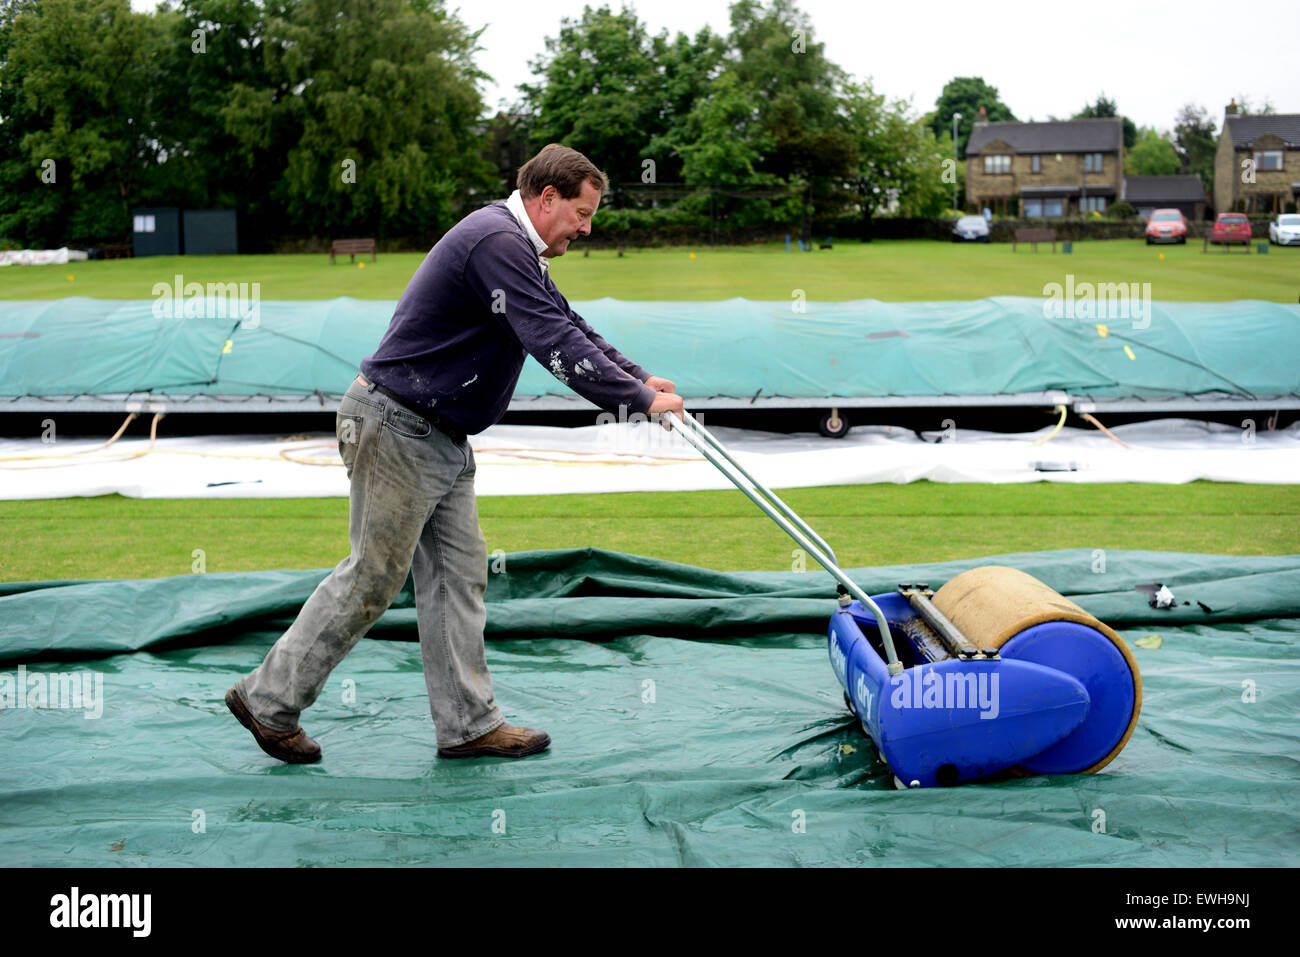 A groundsman soaking up rain water on the cricket pitch using a Bow Dry. Picture: Scott Bairstow/Alamy - Stock Image